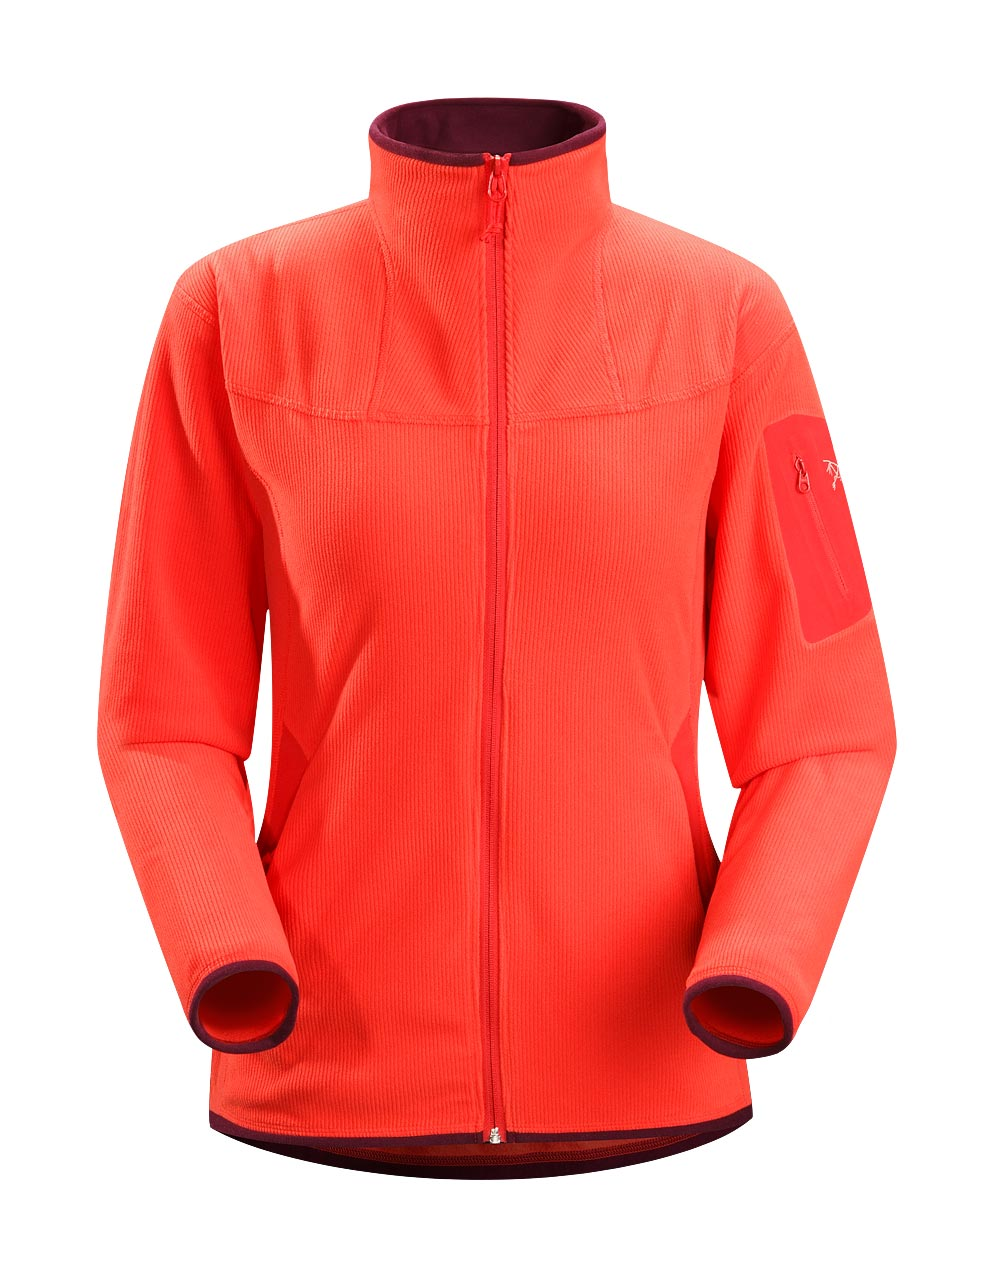 Arcteryx Women Autumn Coral Caliber Cardigan